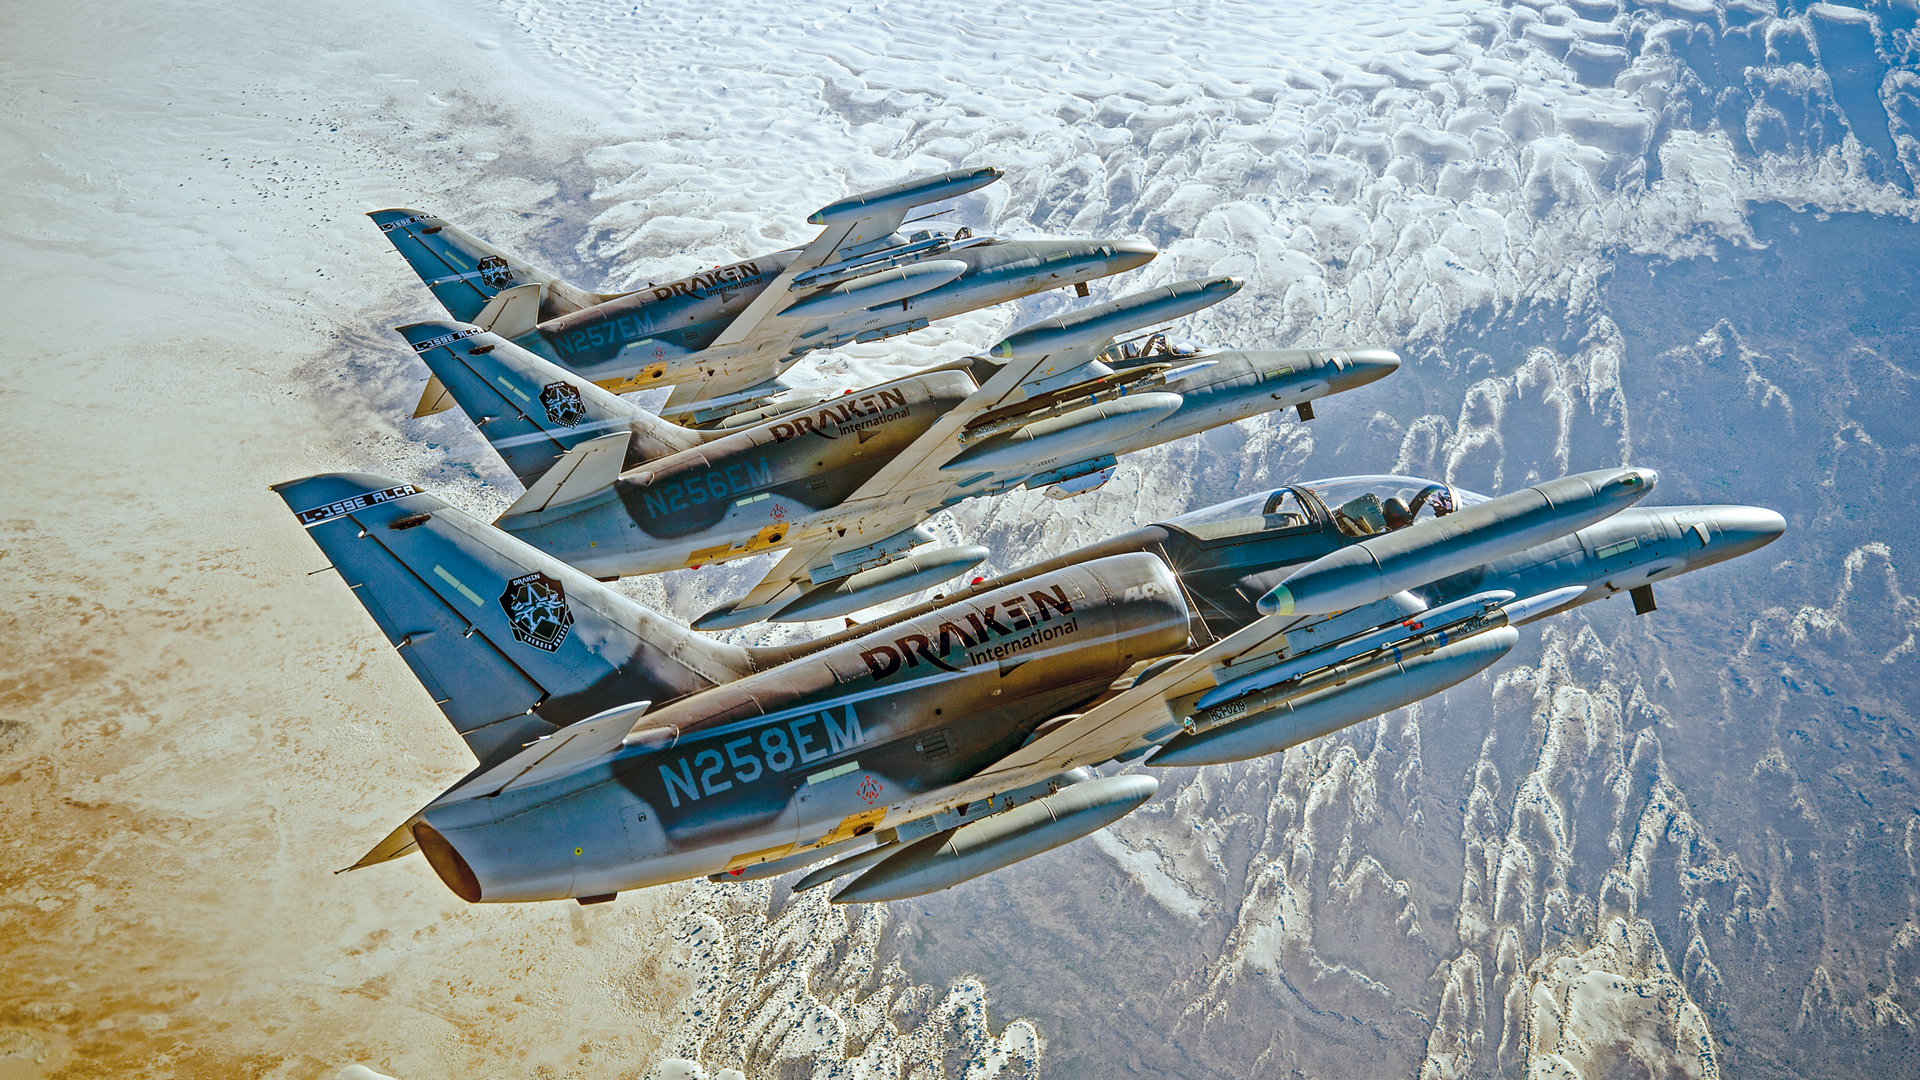 The Aero L-159 is efficient, safe and lethal